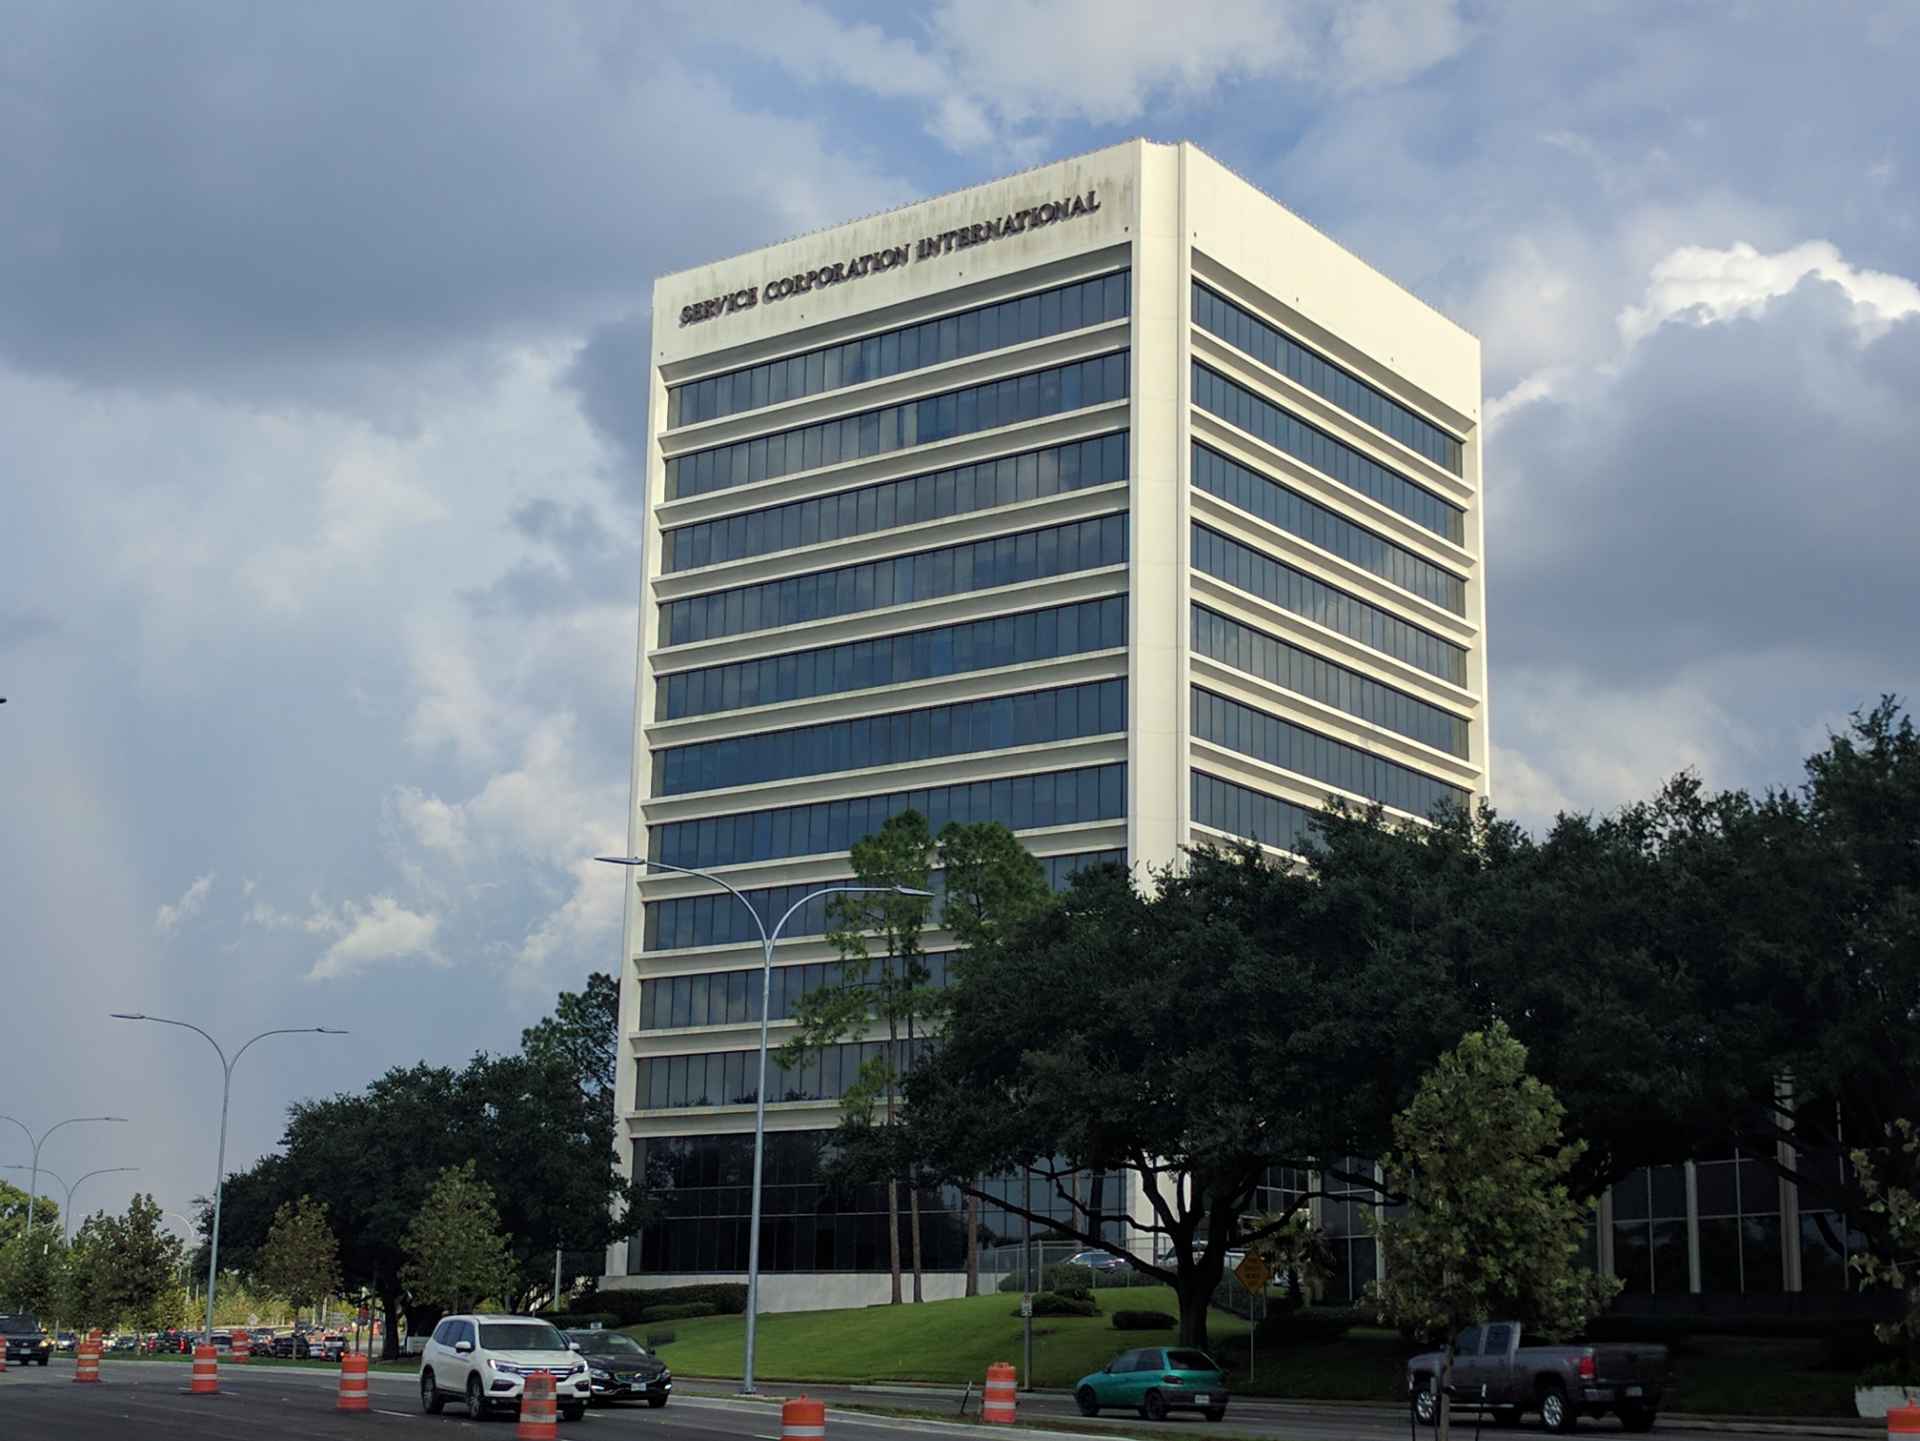 Service Corporation International's corporate headquarters in Houston, Texas.